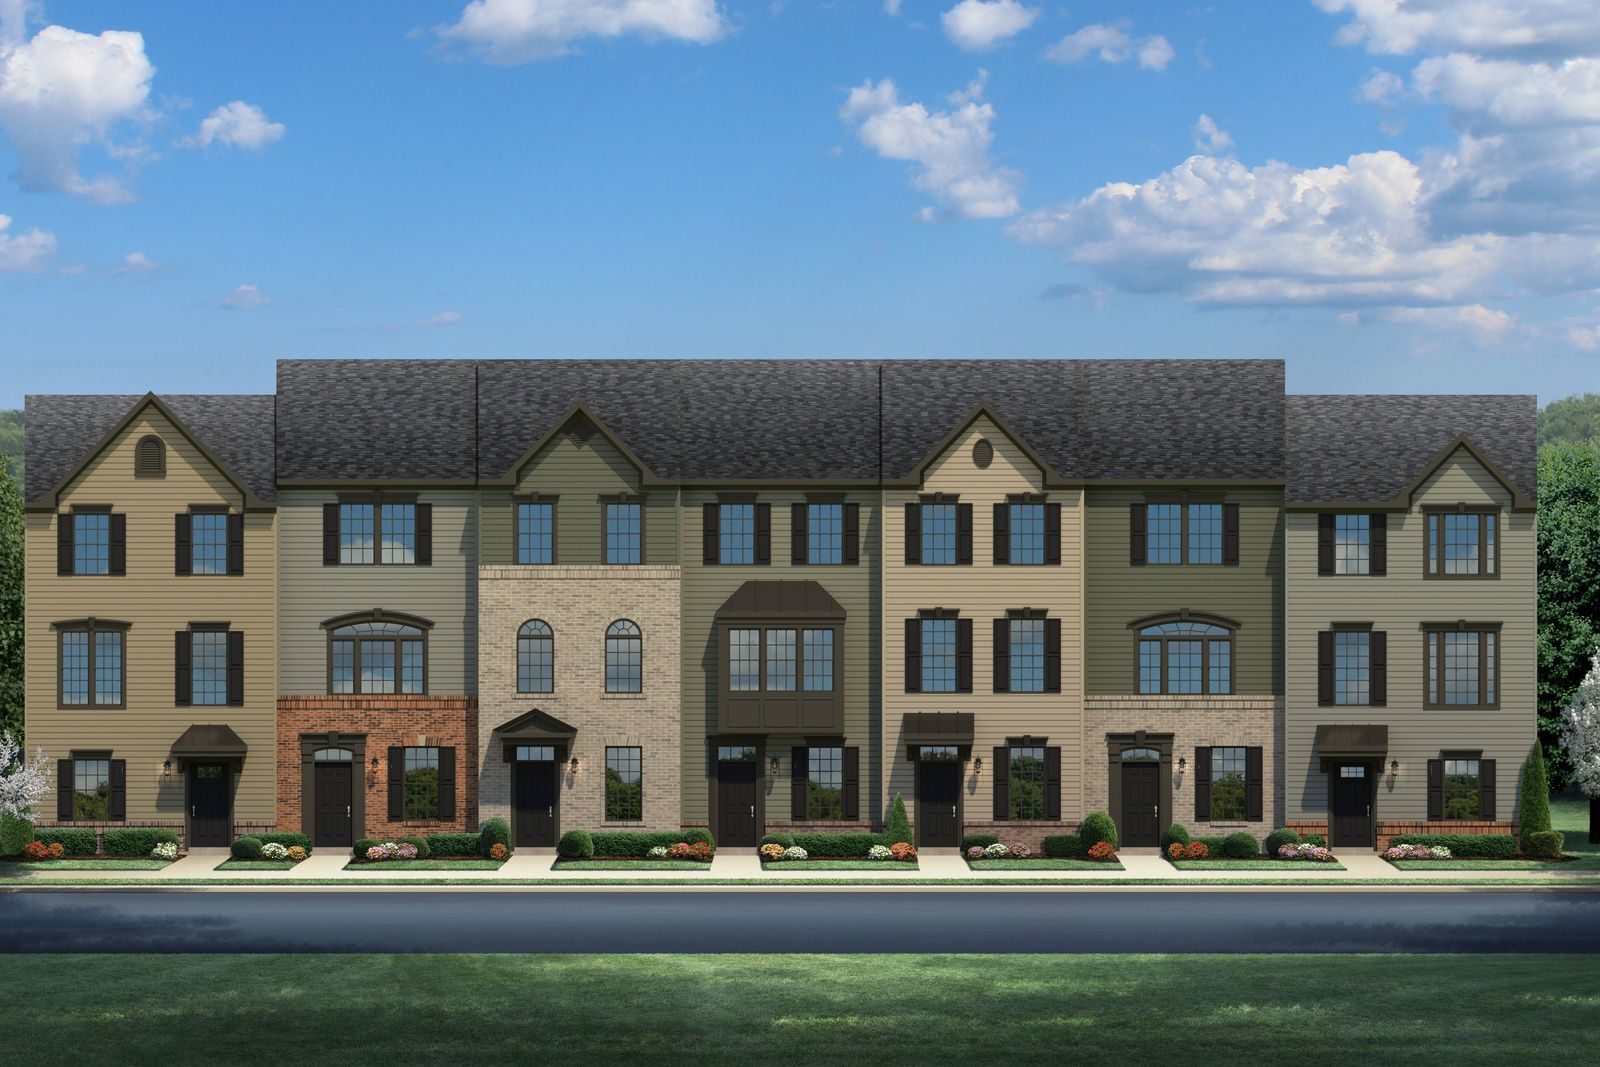 FOSTER'S GLEN - BRAND NEW URBAN TOWNHOMES NOW OPEN IN FAIRFAX COUNTY!:New garage townhomes for the best value in Fairfax County! Off Rte. 28 near Dulles Airport, the Metro, Herndon & Reston! Pricing starts in the $600s -Schedule your visit today!